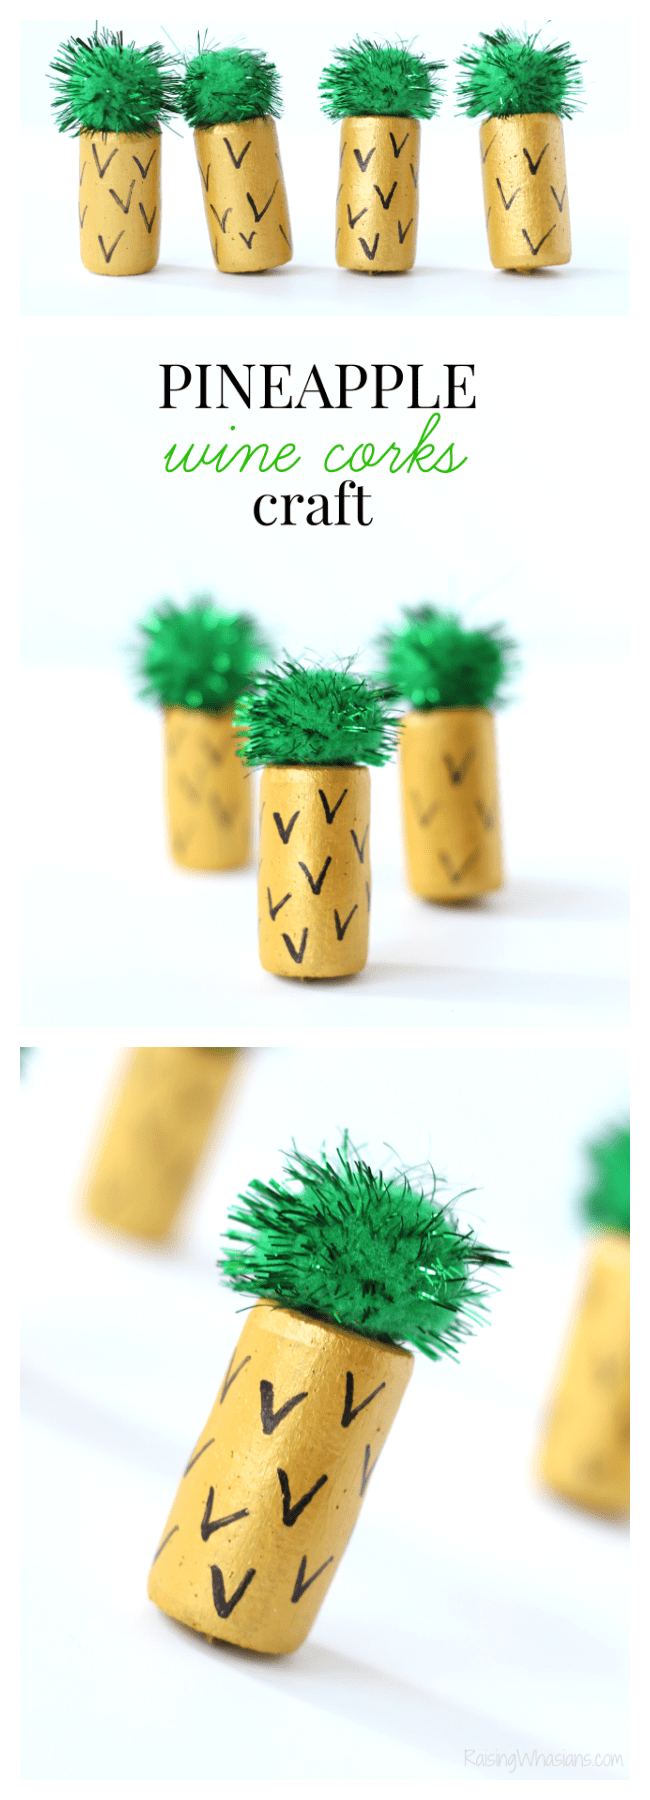 Pineapple wine corks craft pinterest